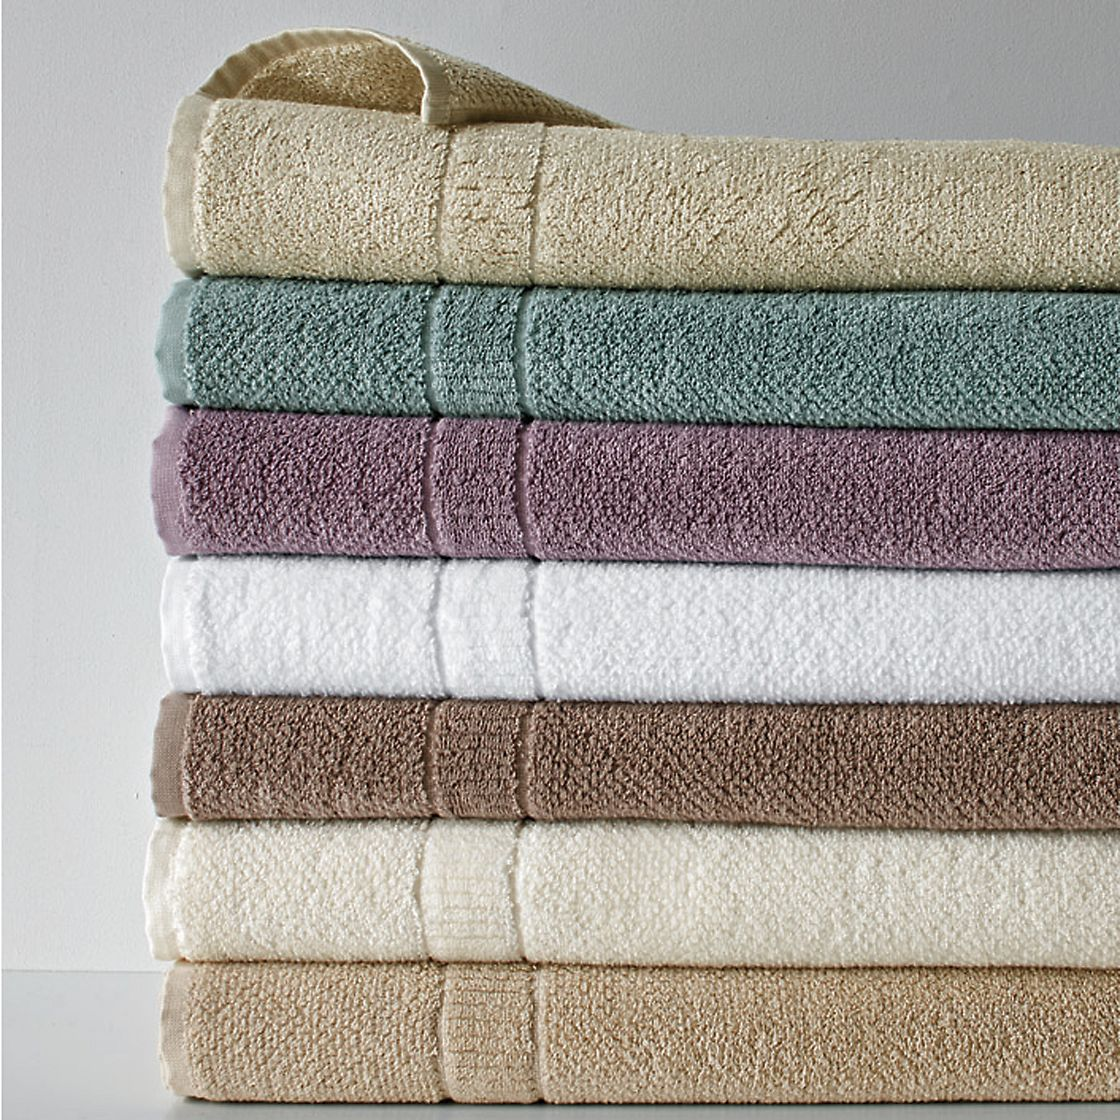 Hotel Zero towels are towels are made of Hotel Zero towels are towels are made of % Zero Twist cotton. Solid color towel with beautiful wide border. These towels are thick and absorbent at GSM. The extreme softness provides comfort.